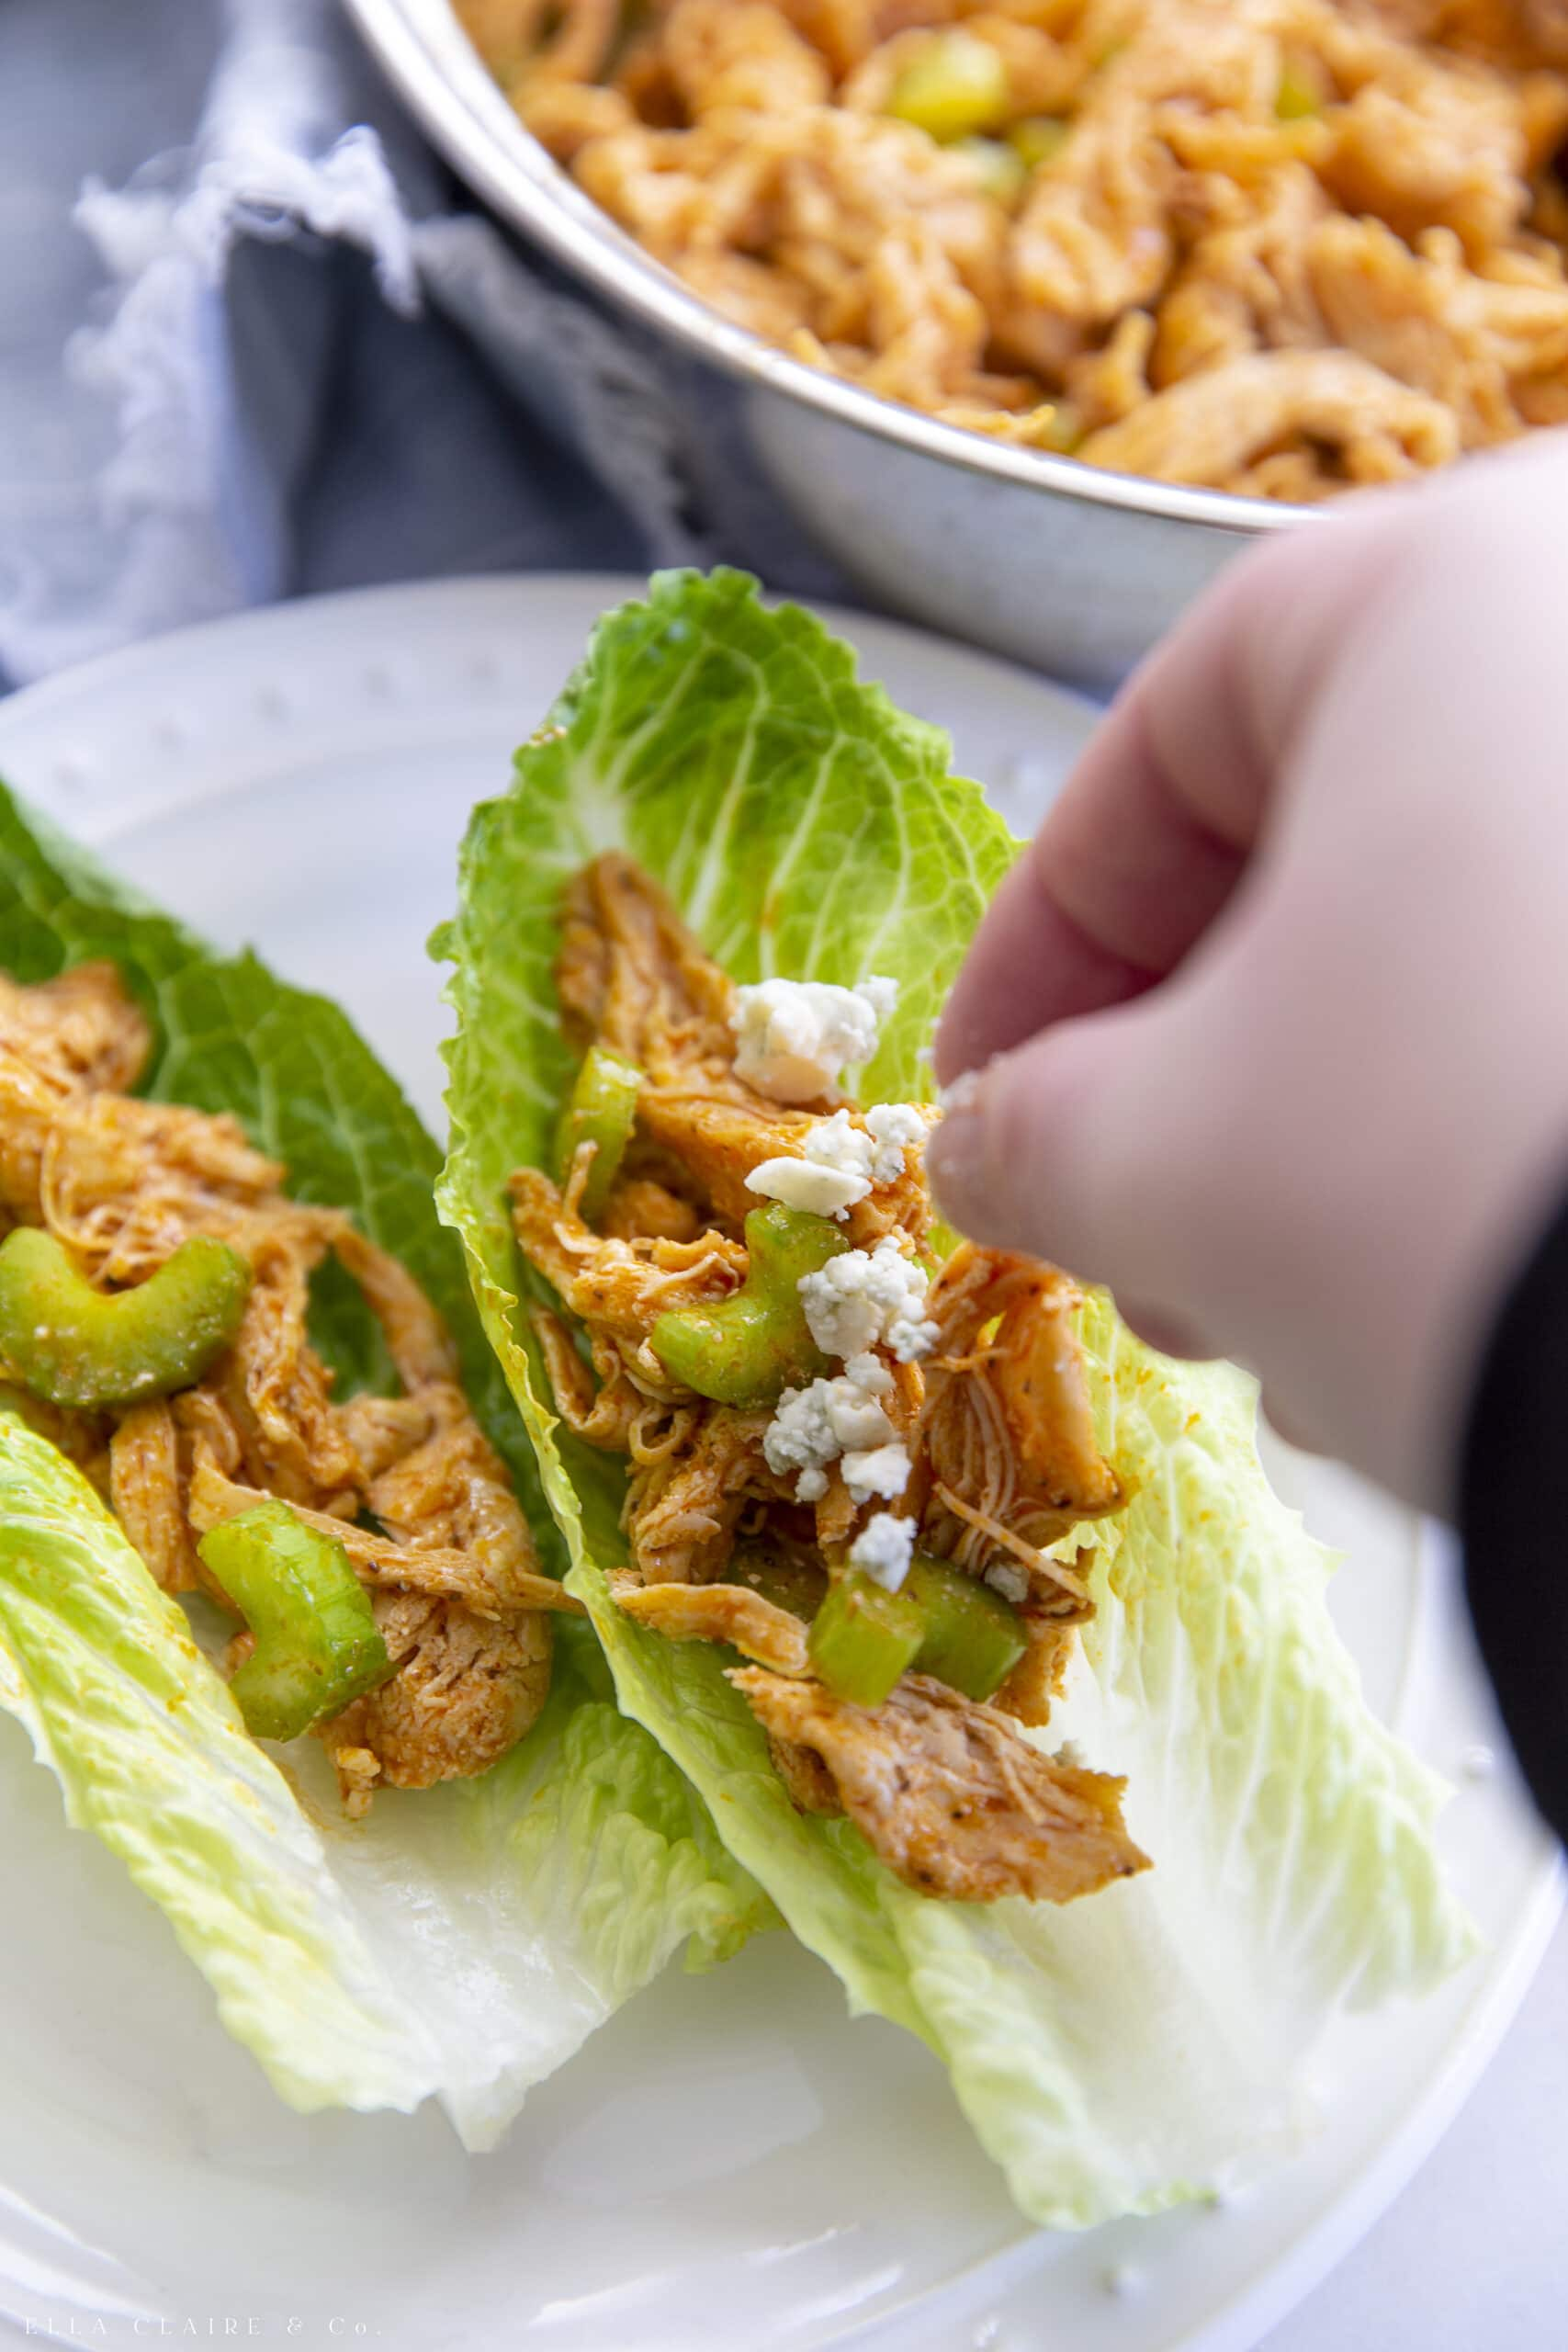 sprinkling buffalo chicken lettuce wraps with blue cheese